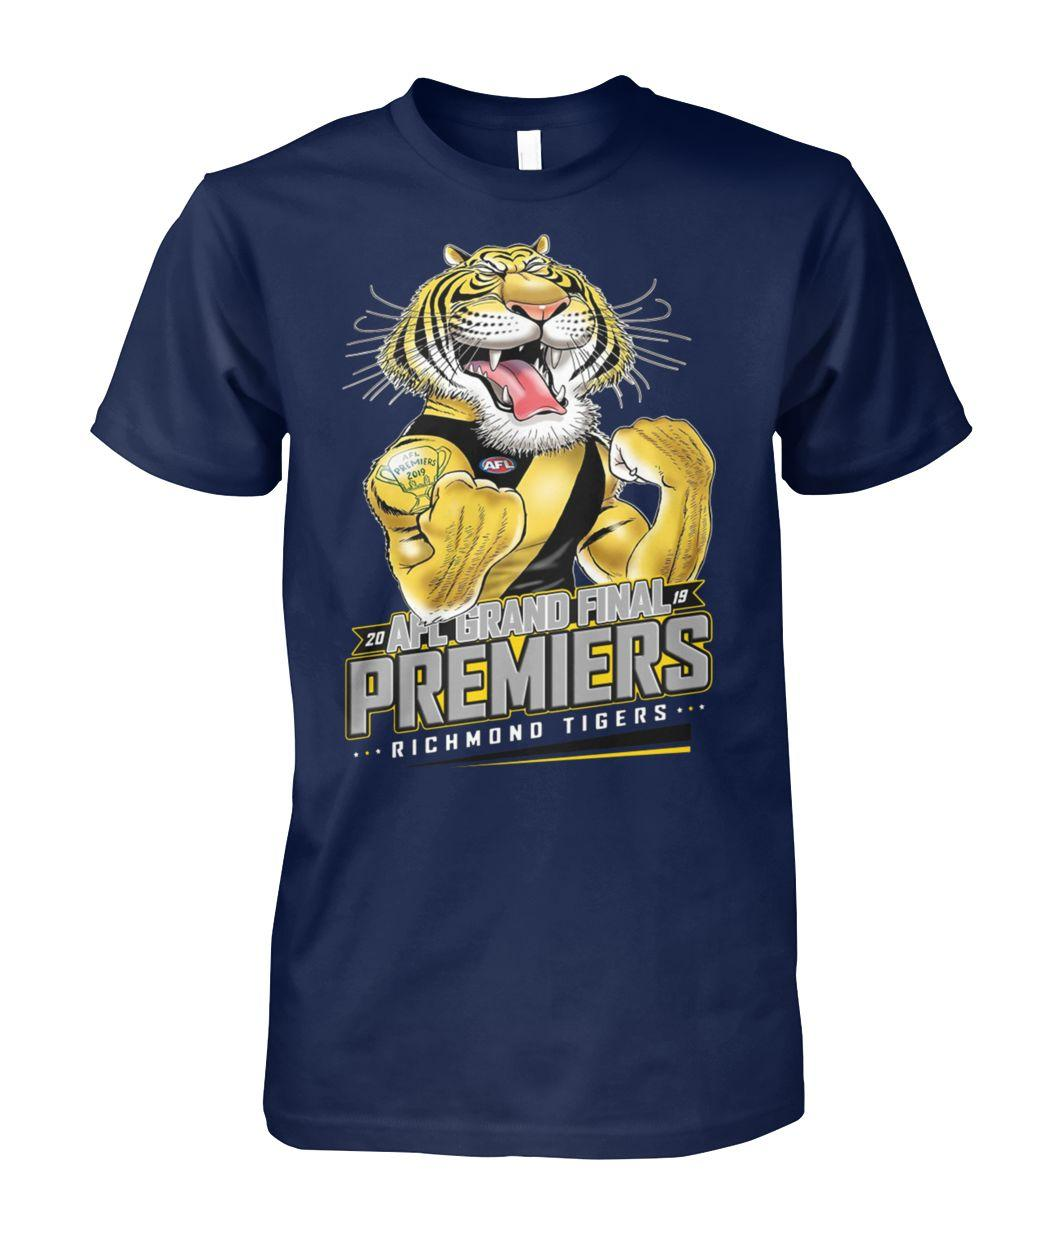 20 AFL grand final premiers richmond tigers unisex cotton tee